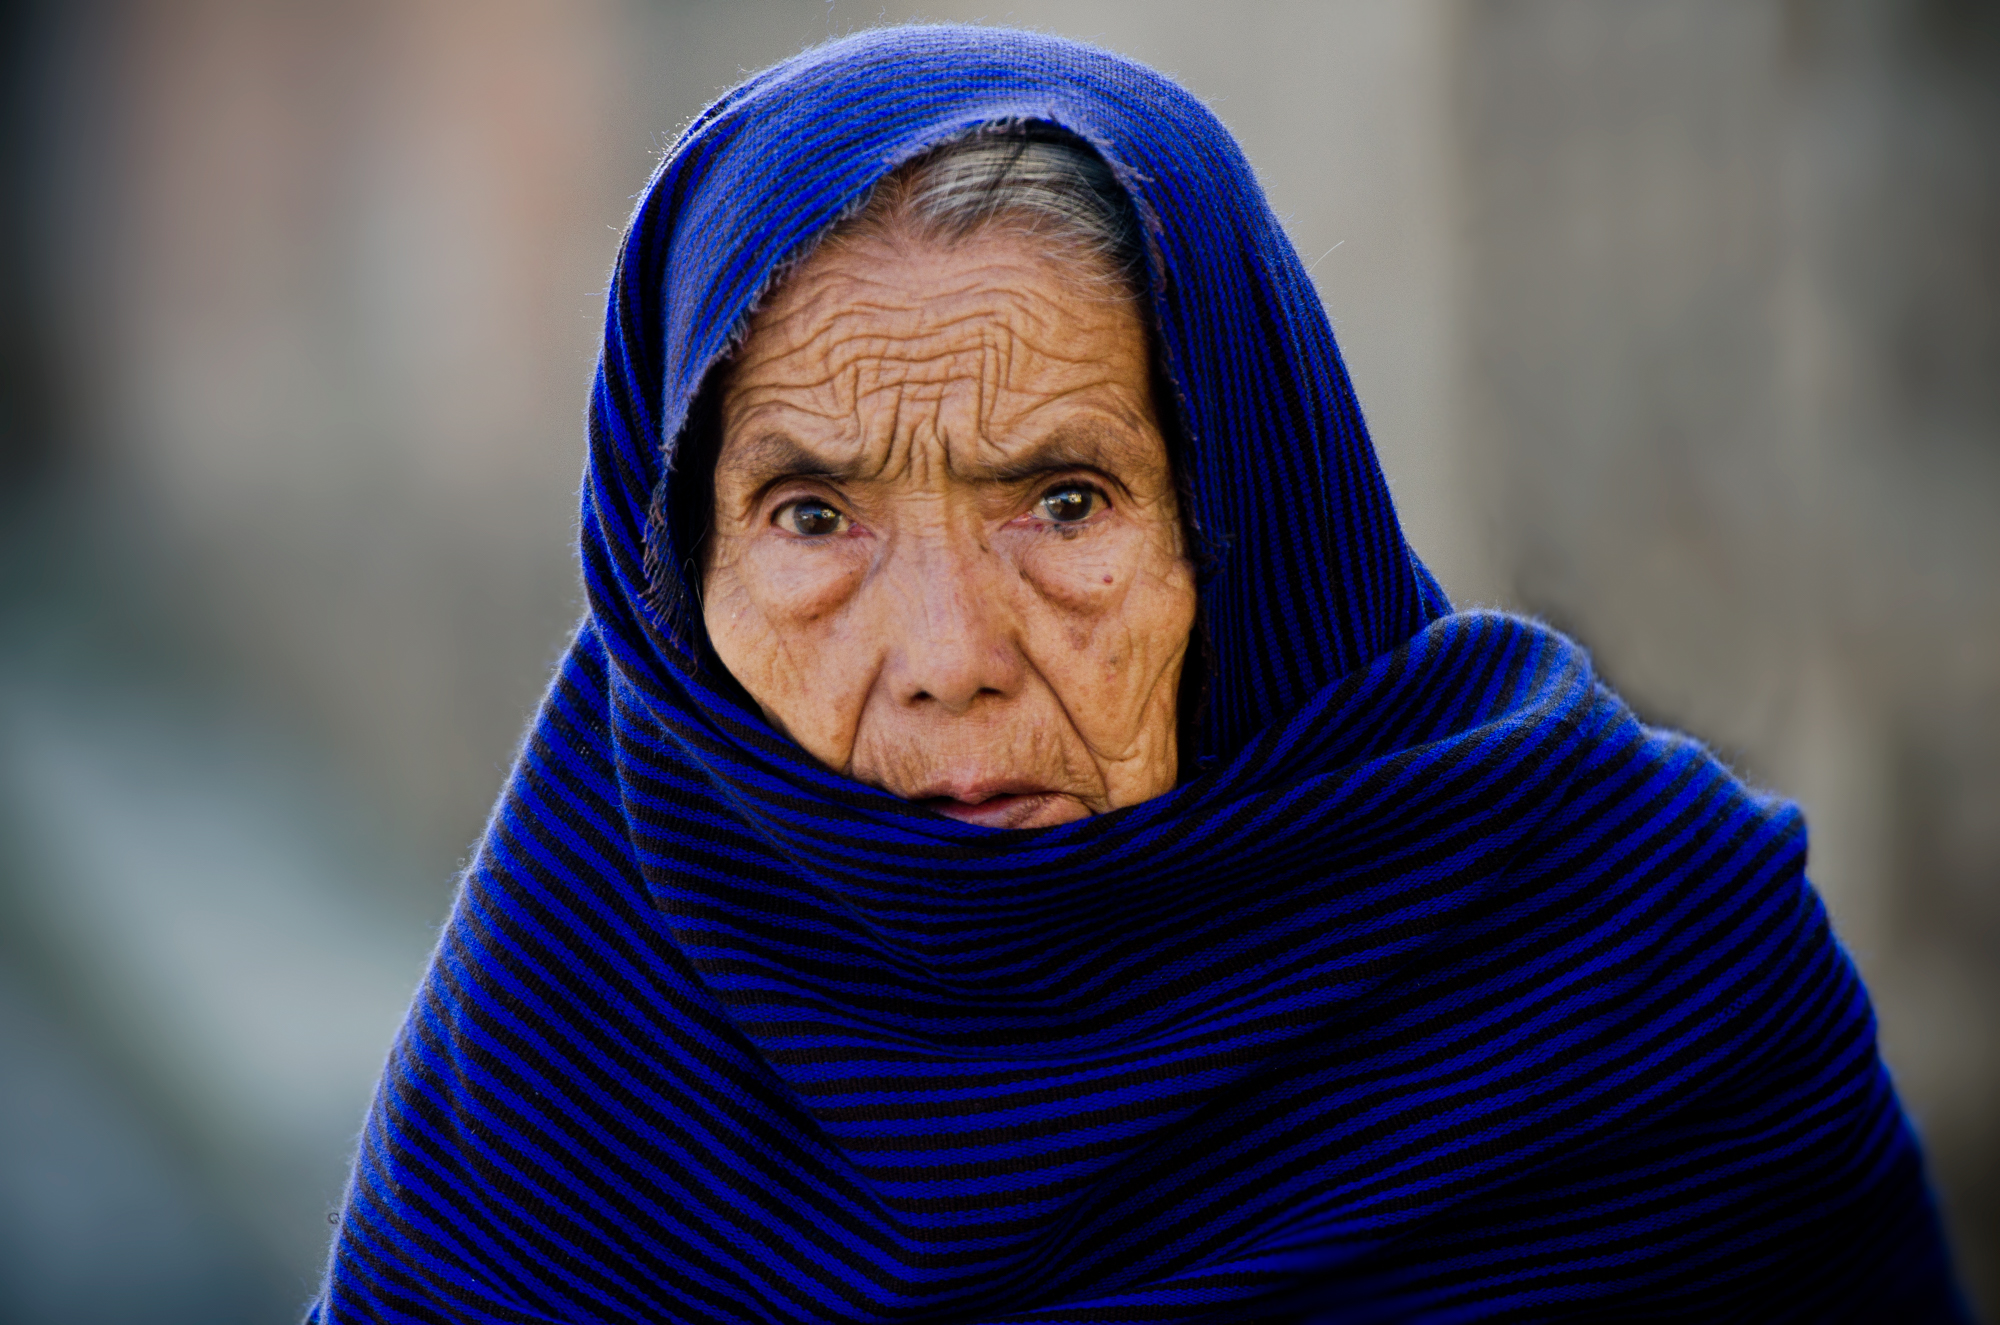 Woman in Blue, Morelia, Mexico